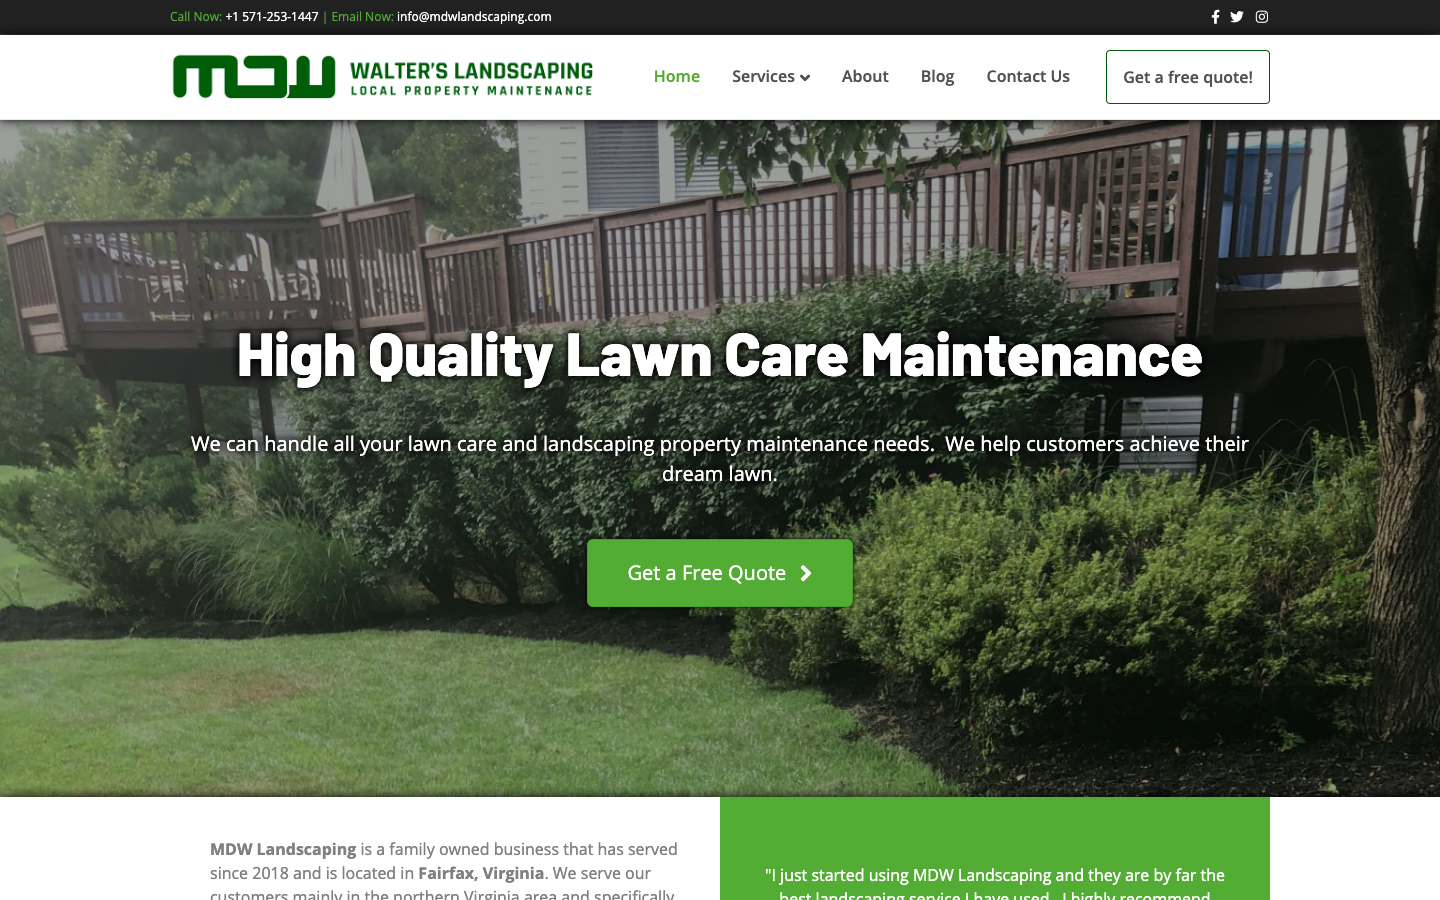 MDW Landscaping